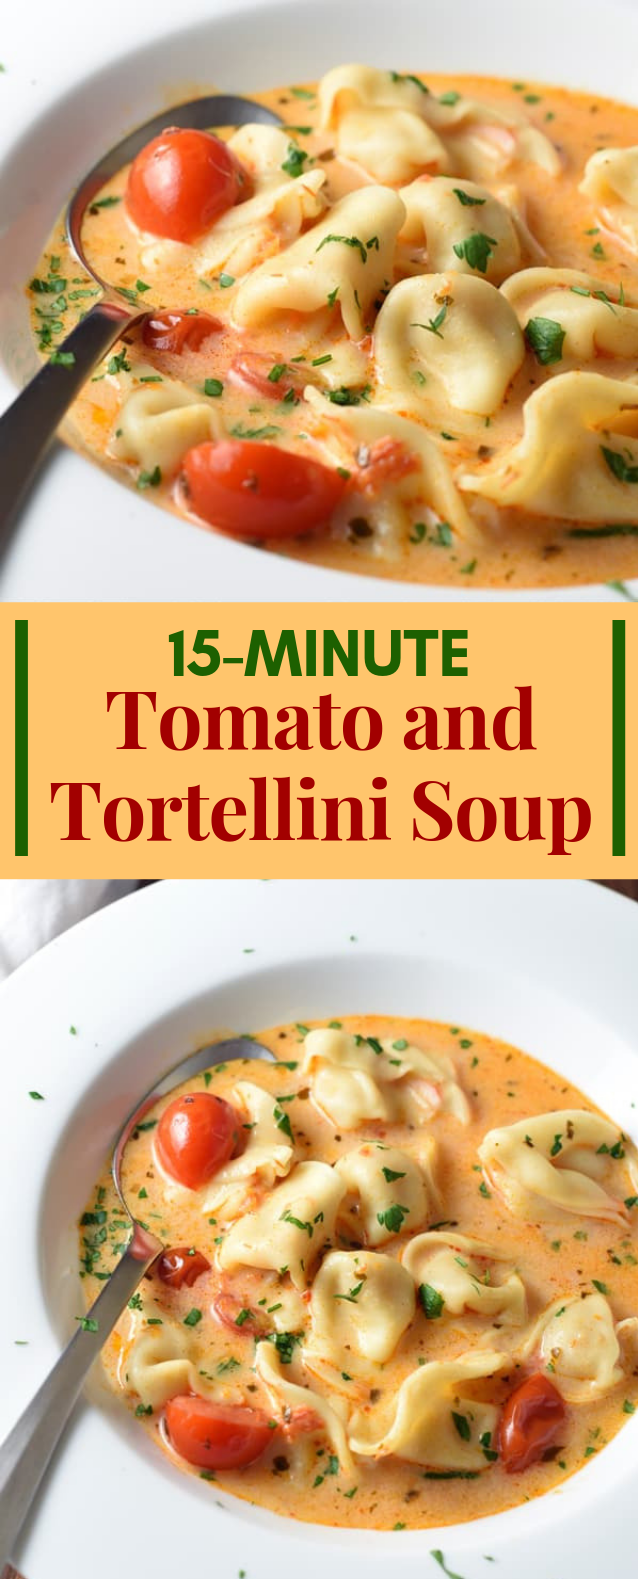 15-MINUTE TOMATO AND TORTELLINI SOUP #dinnertime #weeknights